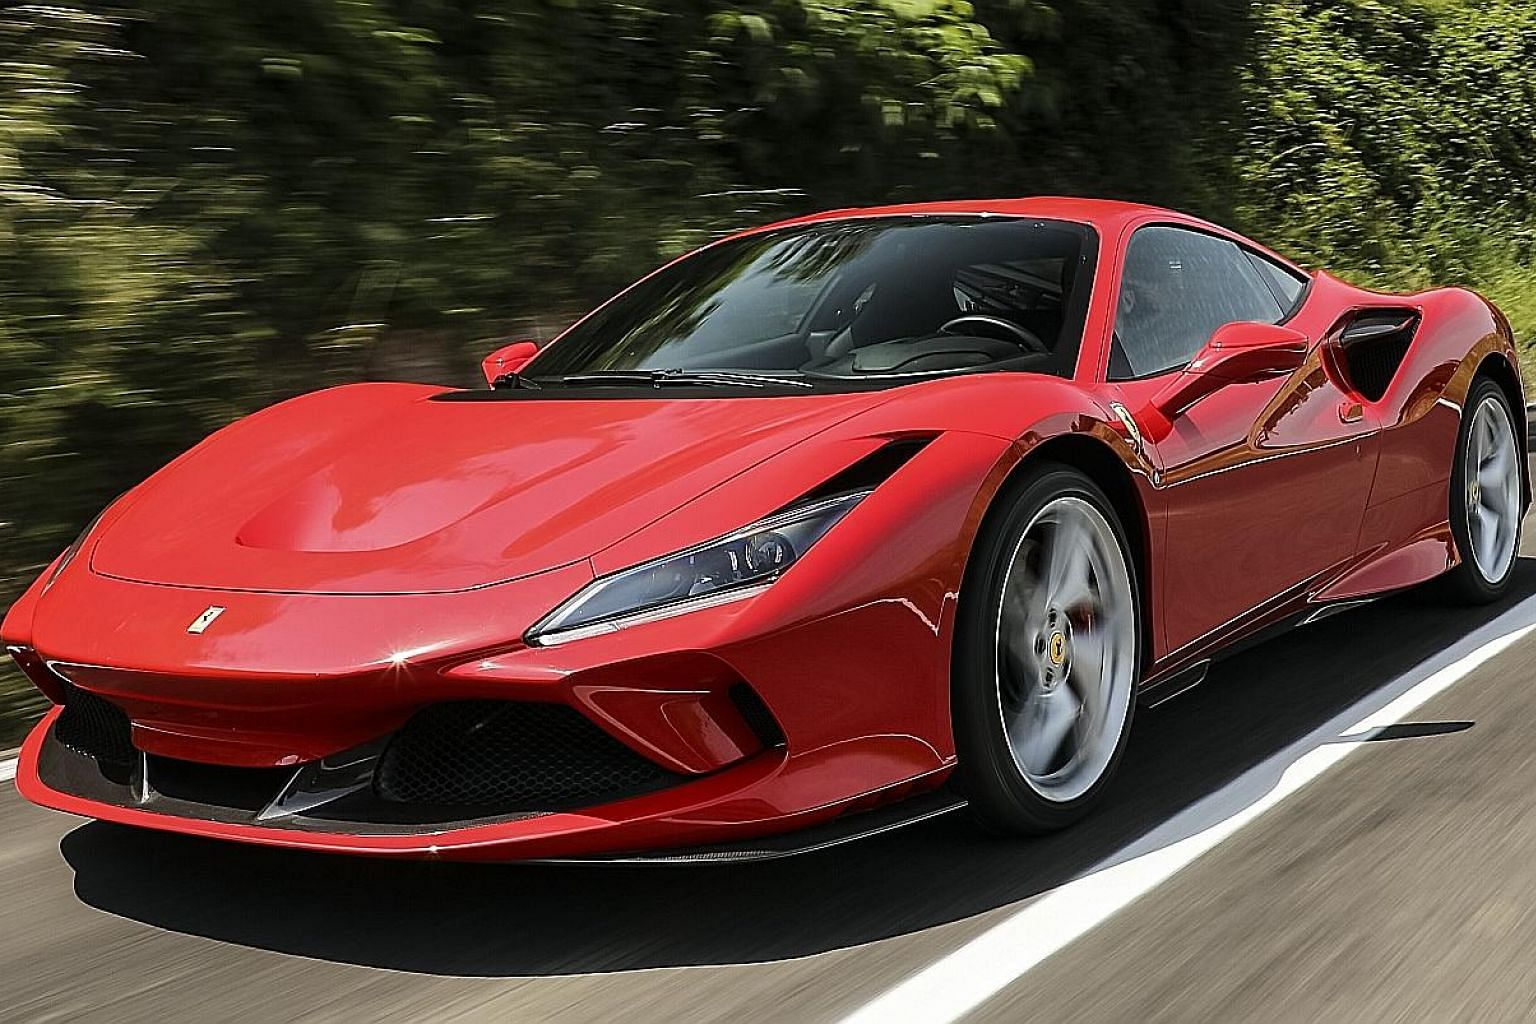 The Ferrari F8 Tributo is some 40kg lighter than the 488 GTB, and this helps it get to 100kmh in 2.9 seconds. By 7.8 seconds, it passes 200kmh.